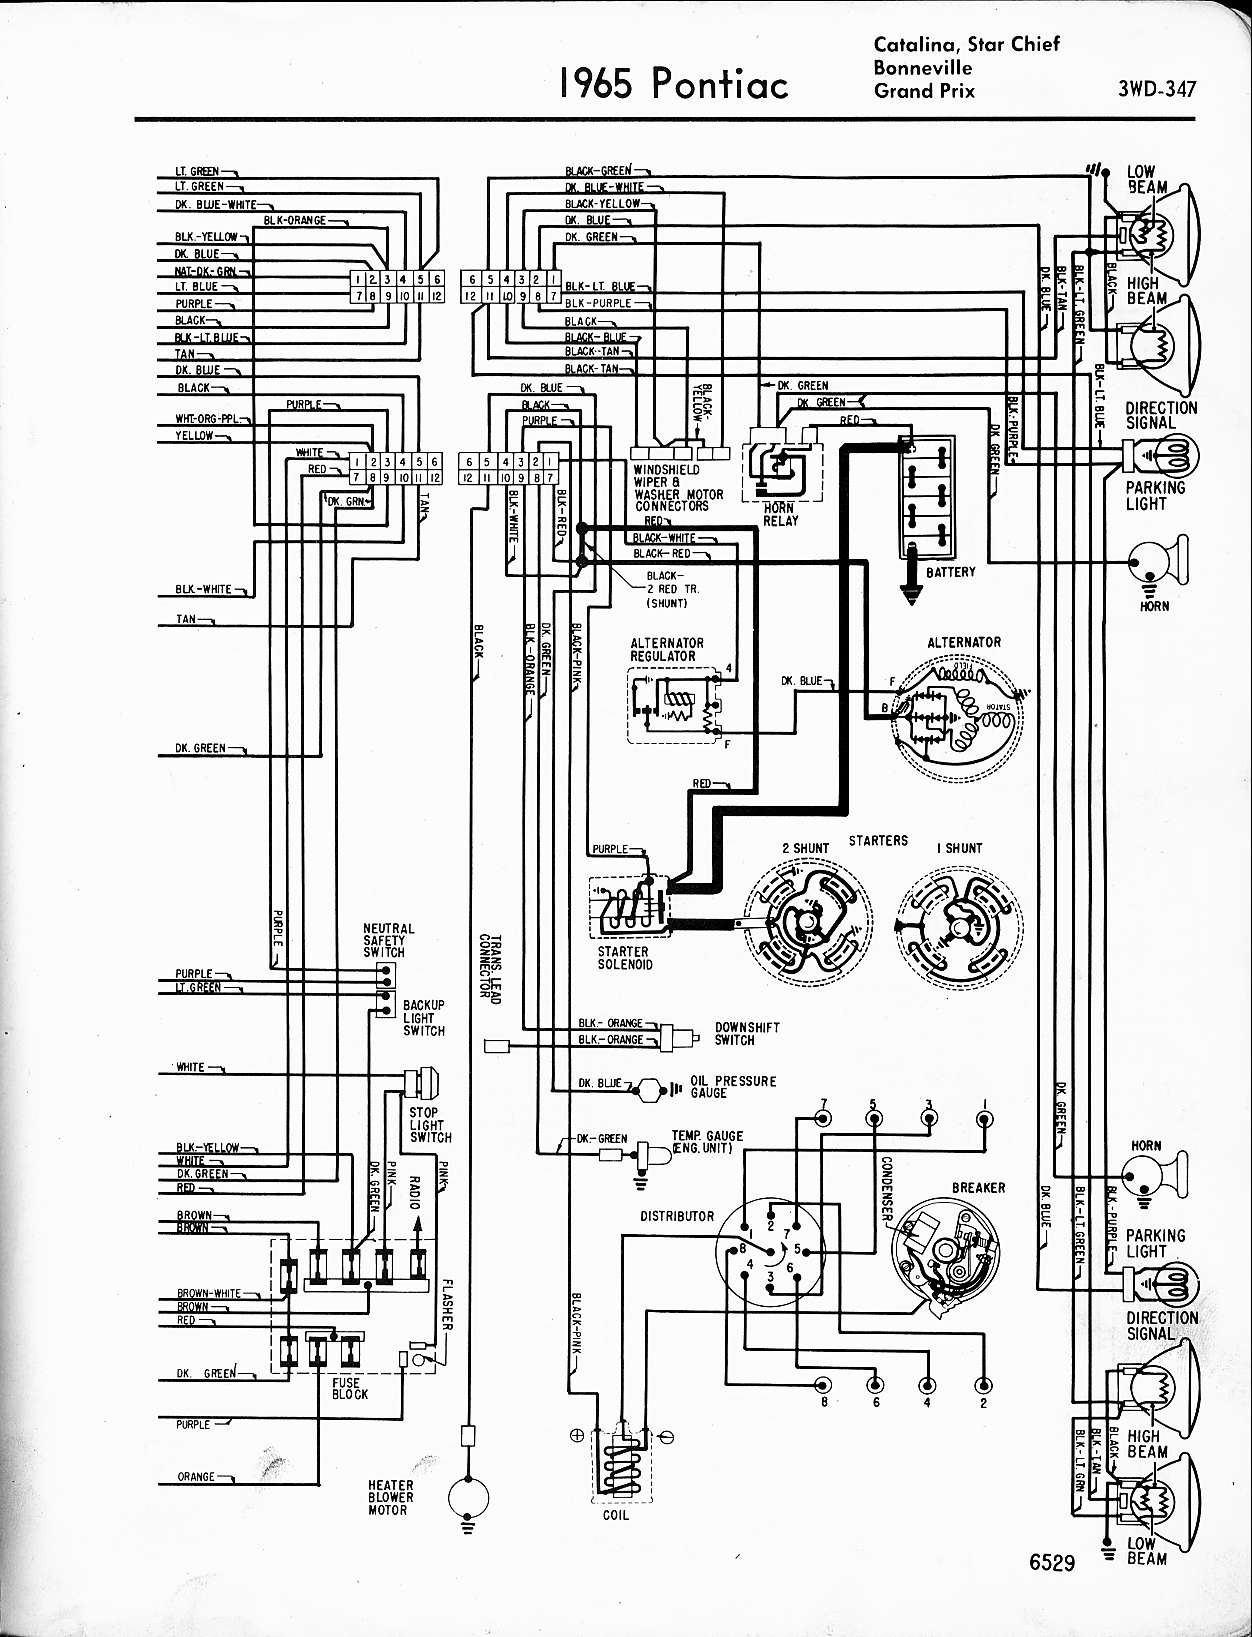 MWire5765 347 i am trying to reconnect the radio in my restored 1964 pontiac 1964 GTO Dome Light Wiring Diagram at bakdesigns.co